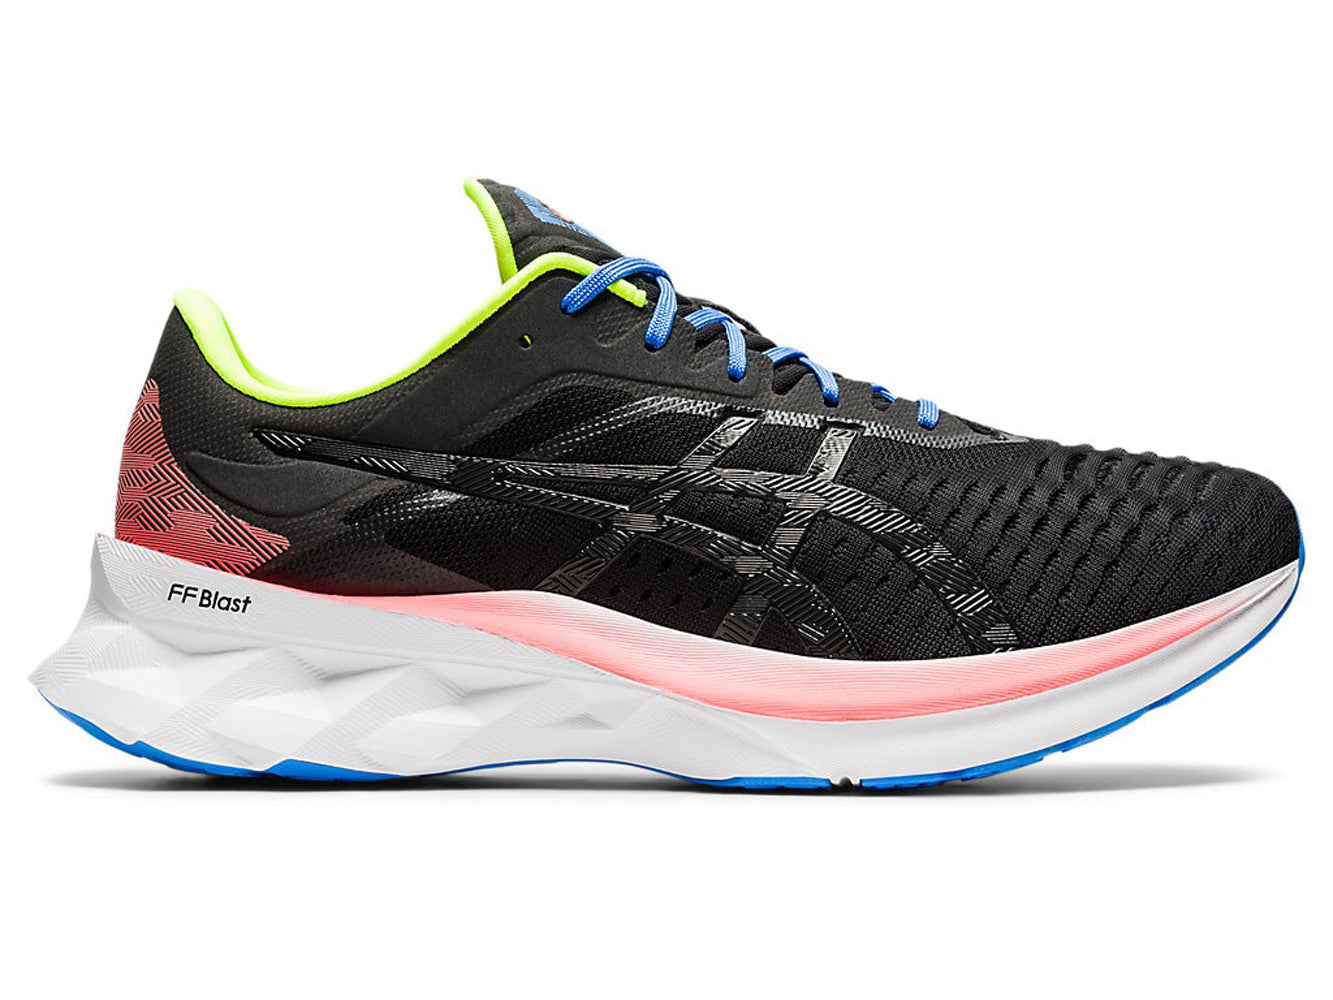 Men's Asics Novablast Running Shoe in Black/Black from the side